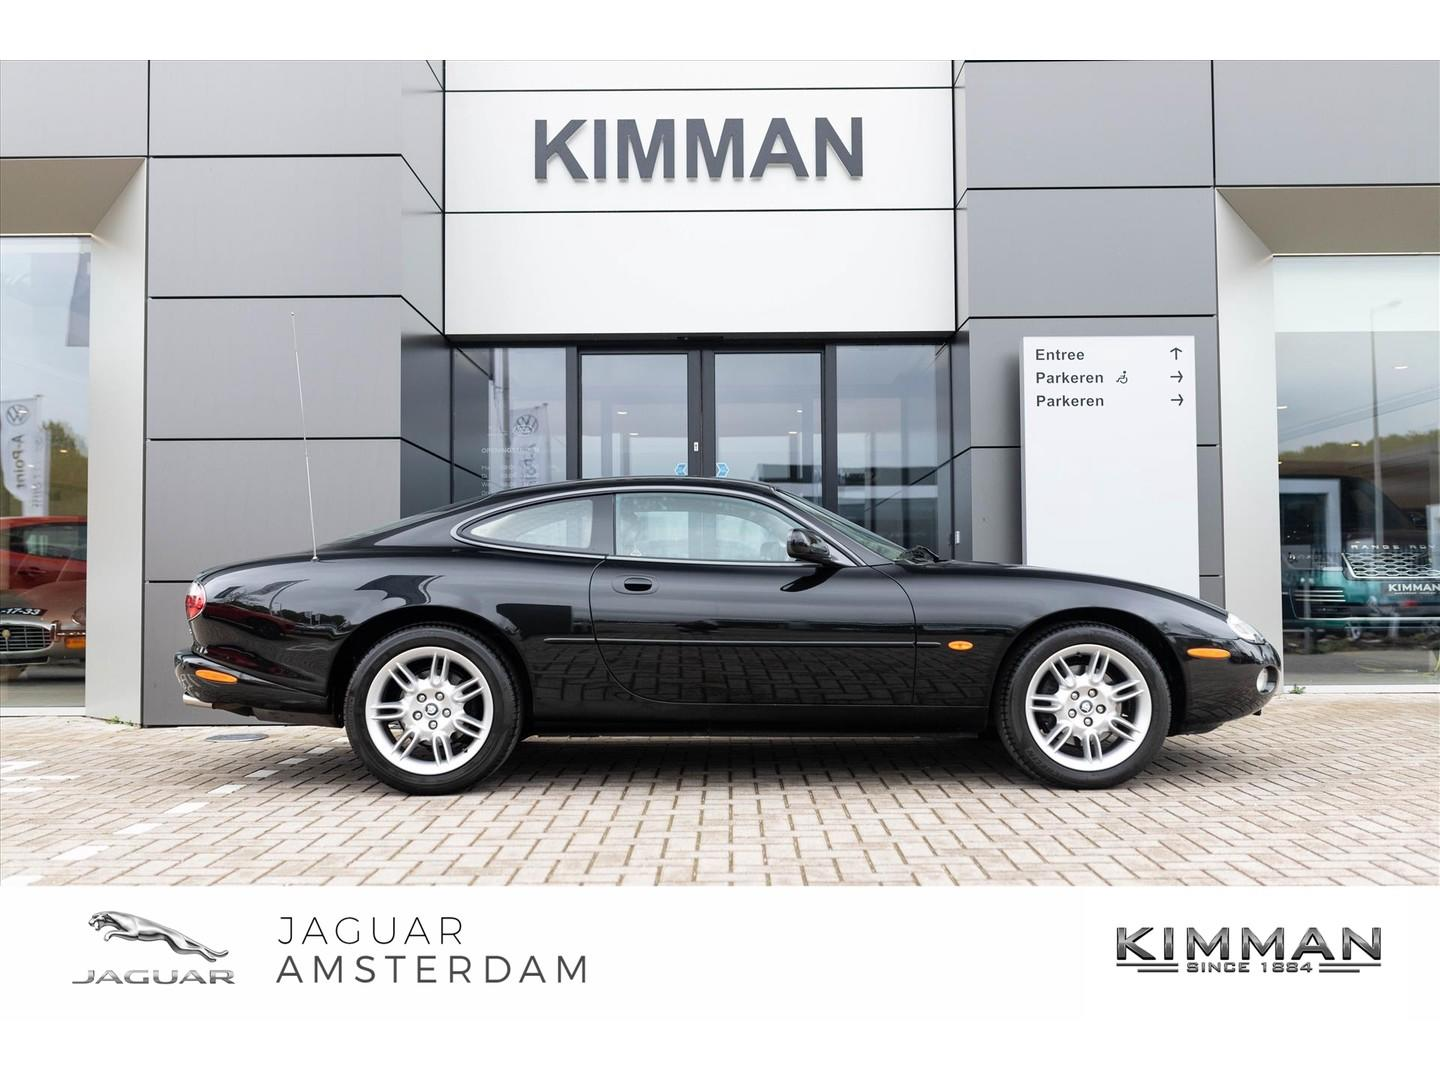 Jaguar Xk8 4.0 v8 coupe * collectors item *